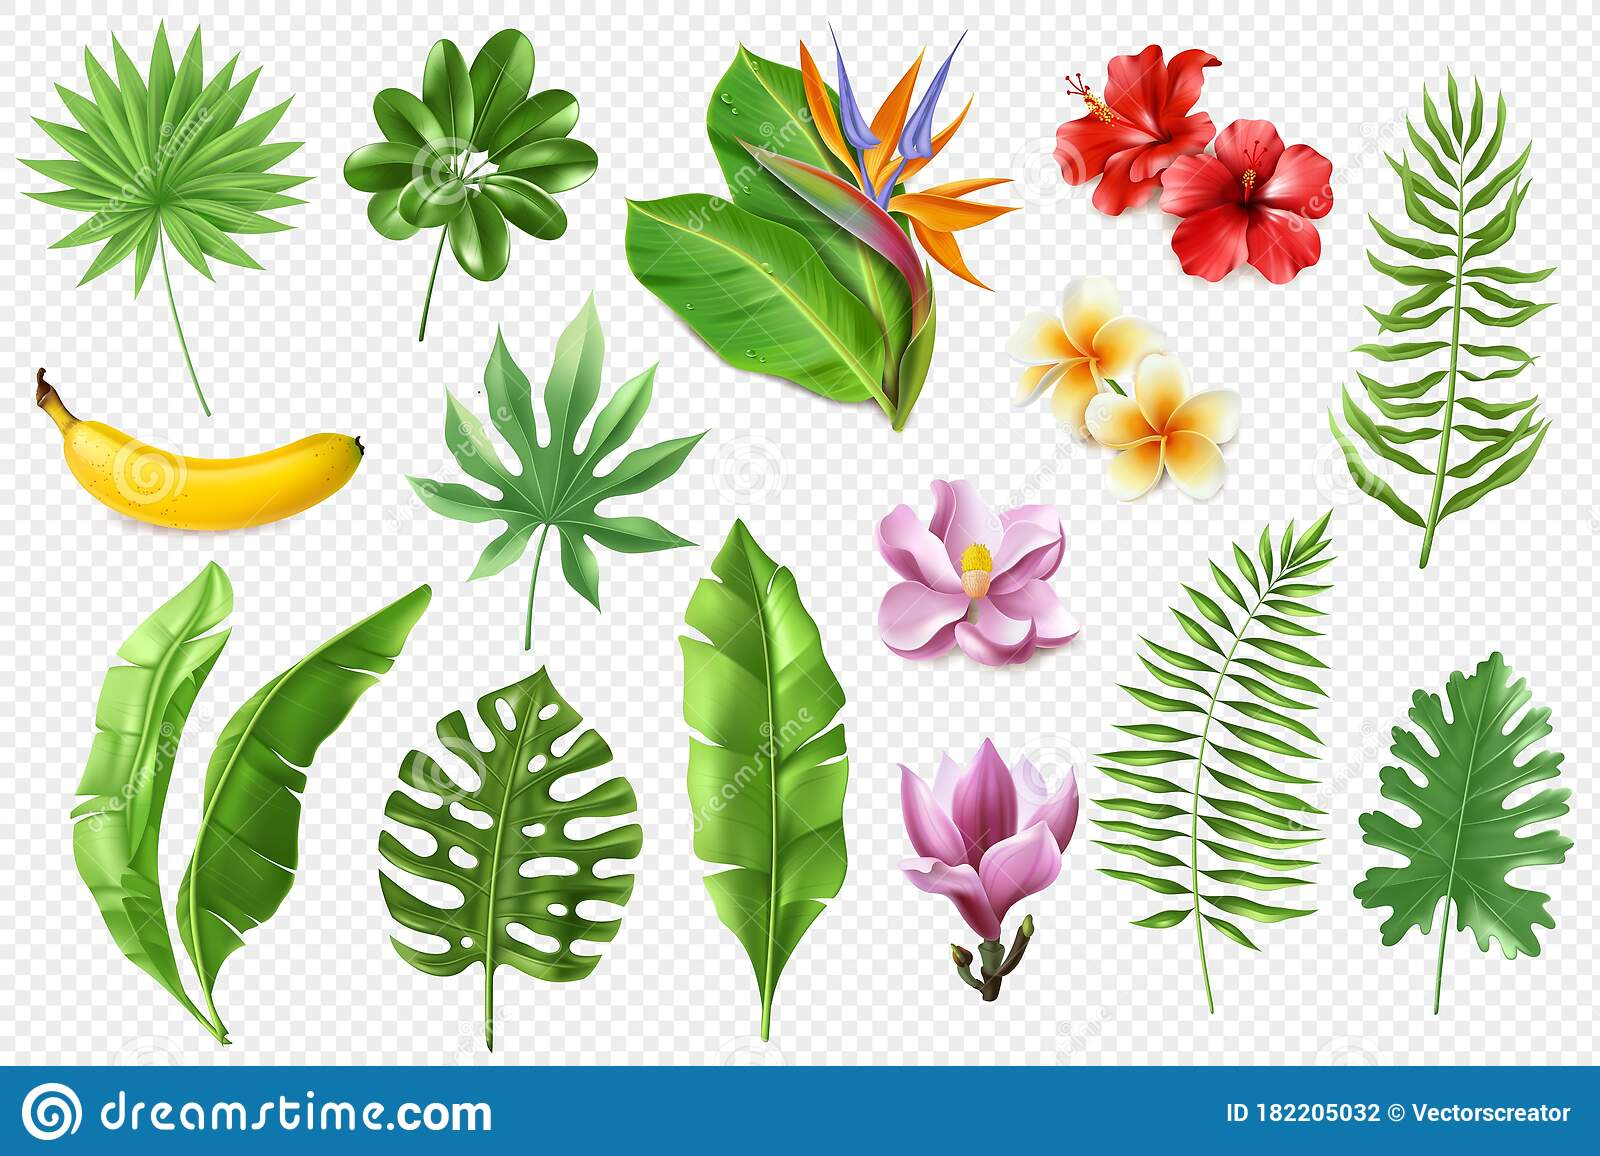 Tropical Leaves Collection A Large Set Of Realistic Tropical Leaves And Flowers On A Transparent Background Vector Stock Vector Illustration Of Botanic Nature 182205032 Green leaves illustration, leaf tropics, banana leaf background, leaf, maple leaf, computer wallpaper png. dreamstime com